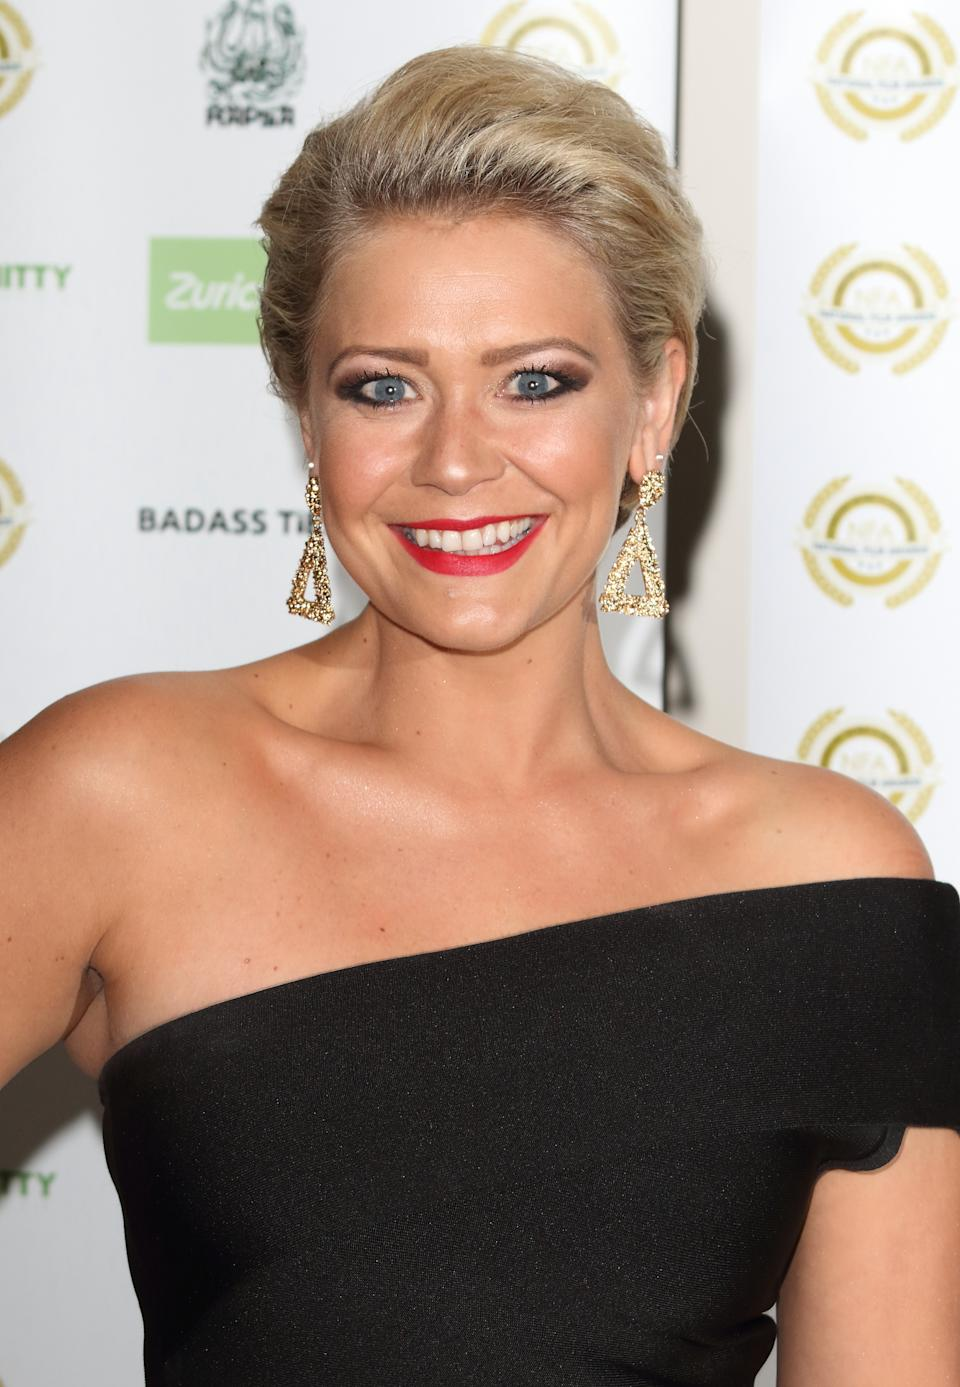 Suzanne Shaw arrives at the National Film Awards 2018 at the Porchester Hall. (Photo by Keith Mayhew/SOPA Images/LightRocket via Getty Images)